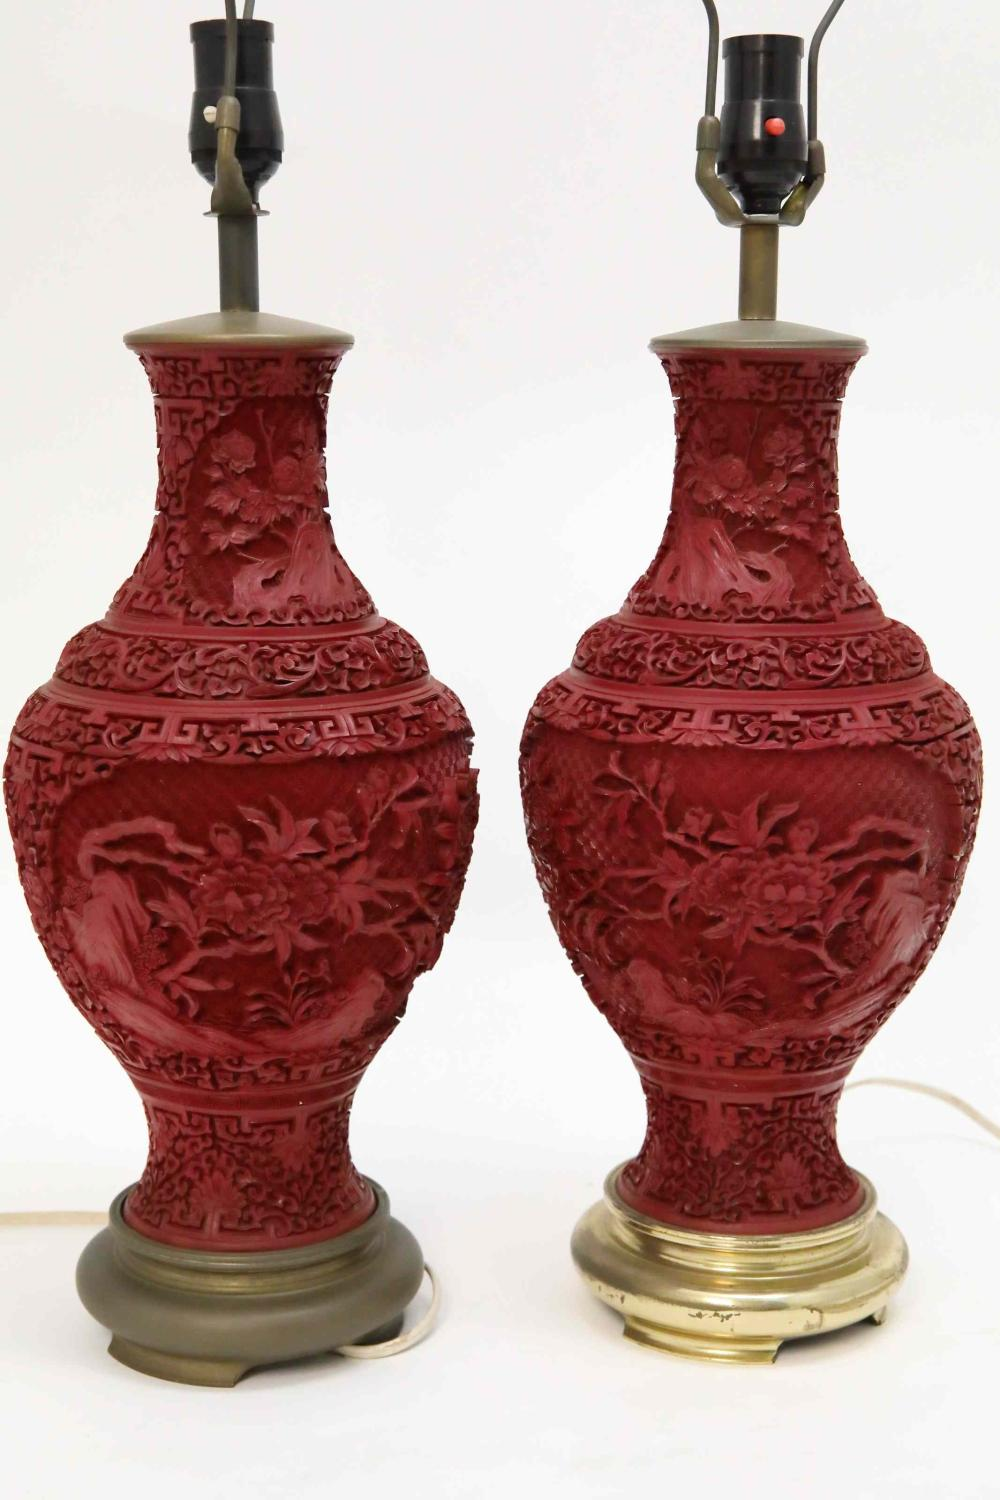 Pr Lg Chinese Cinnabar Vases mounted as Lamps